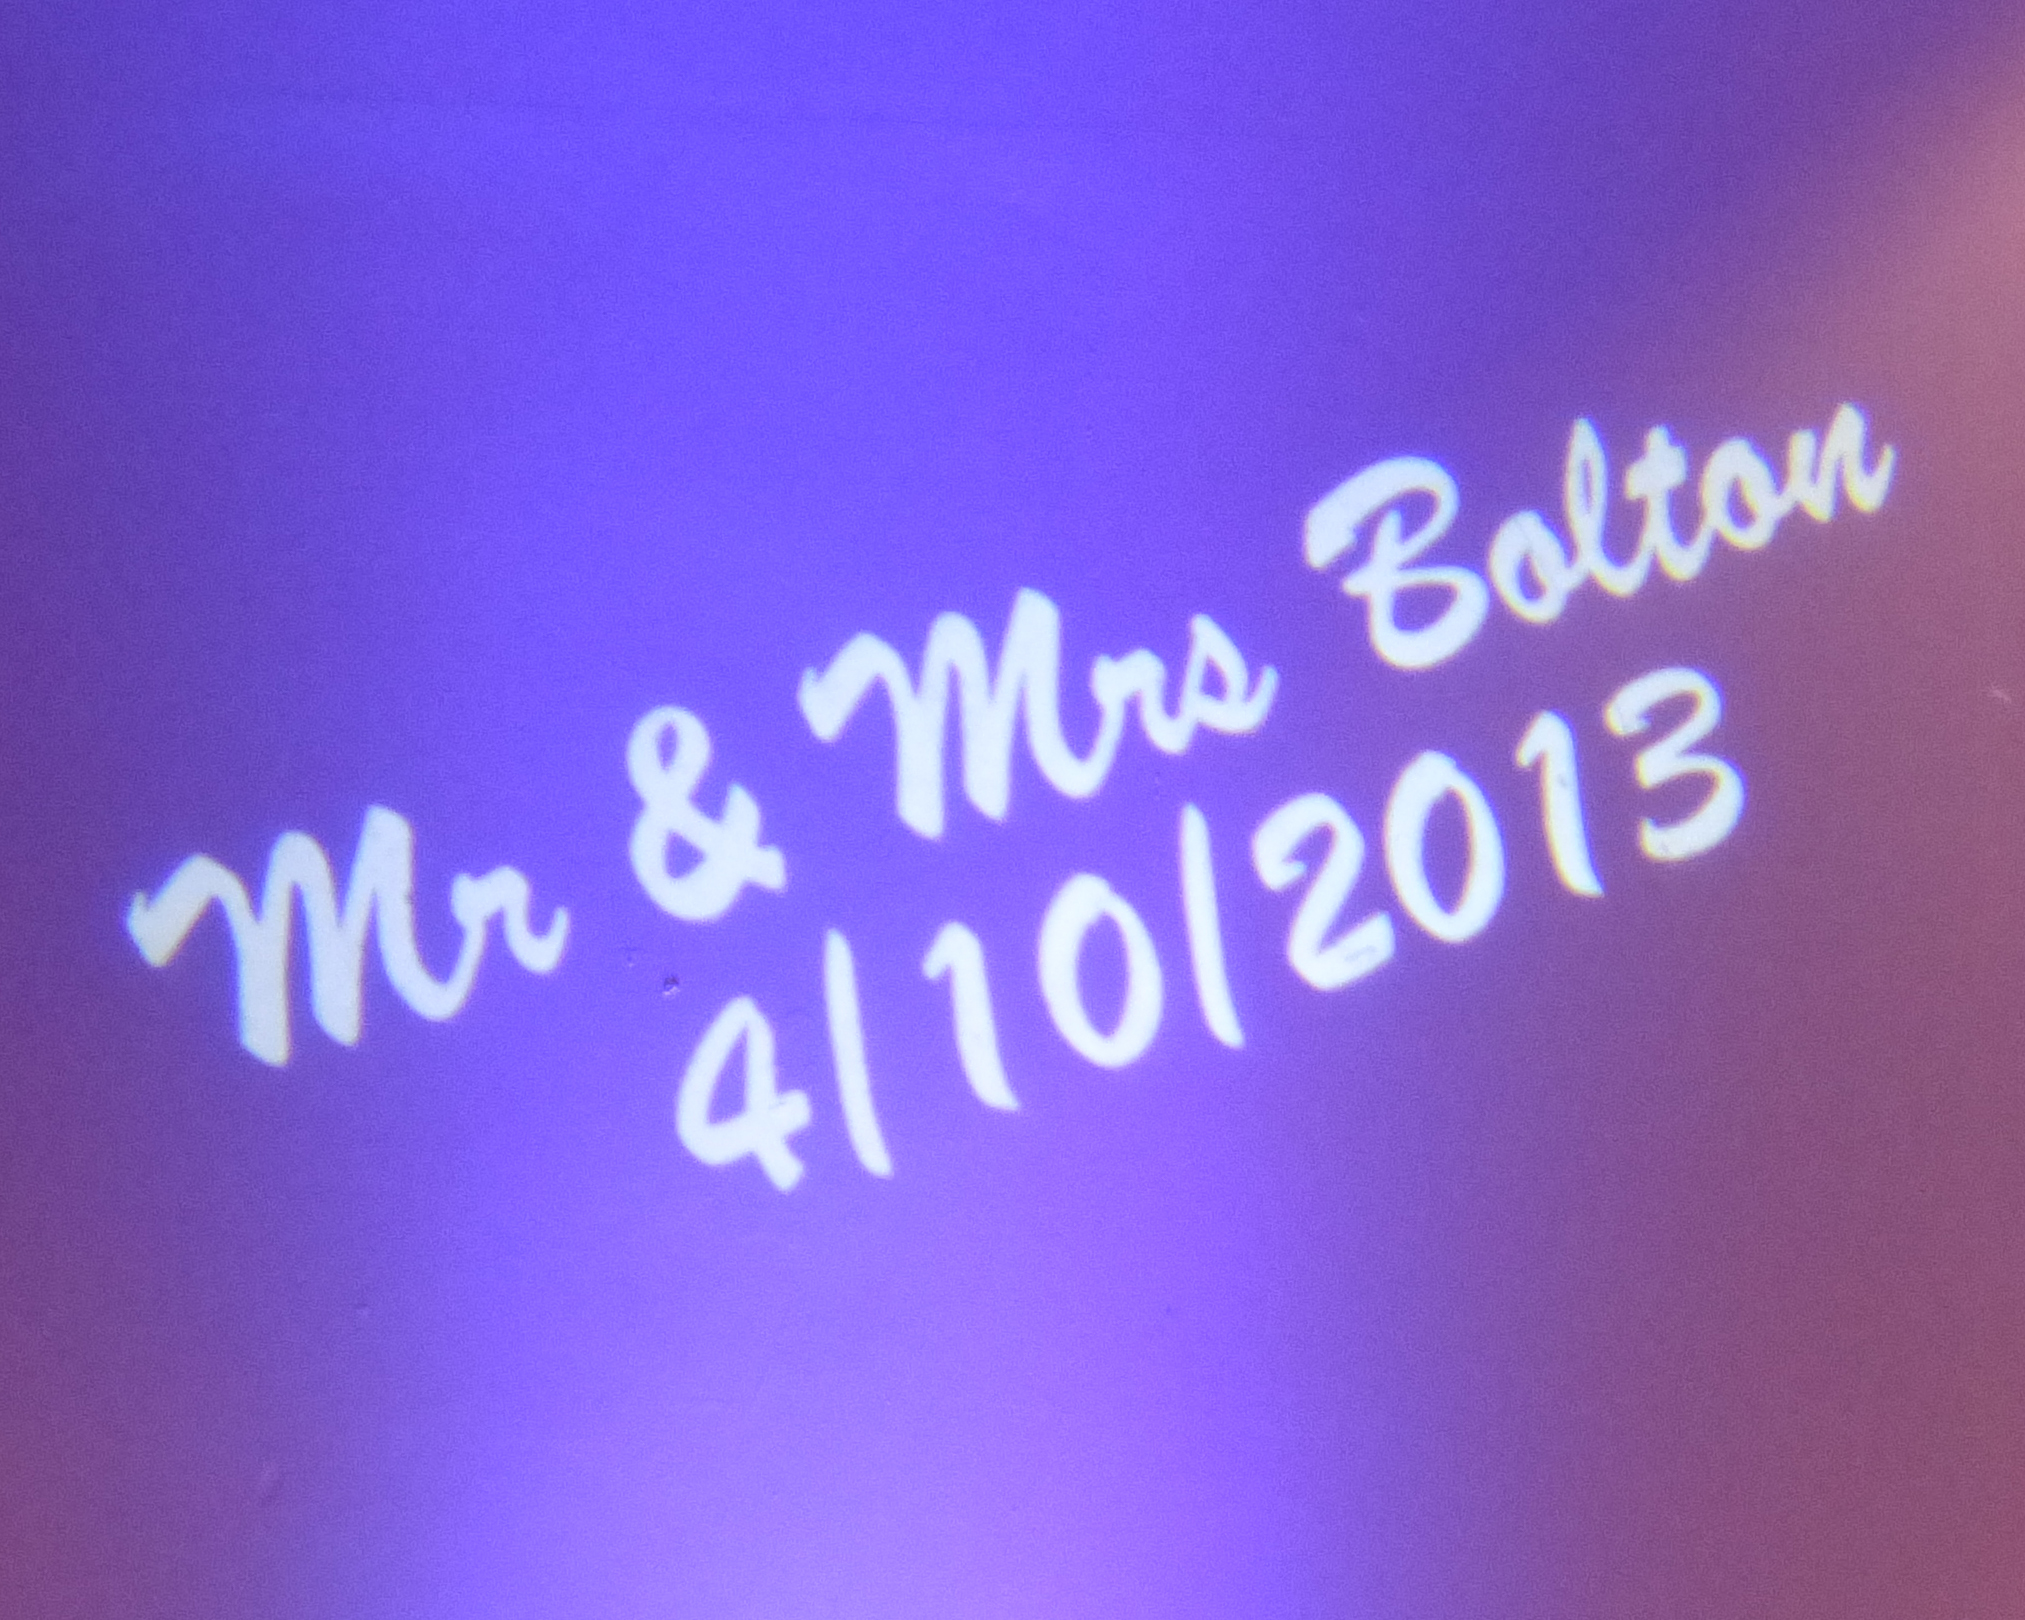 Mr and Mrs Bolton